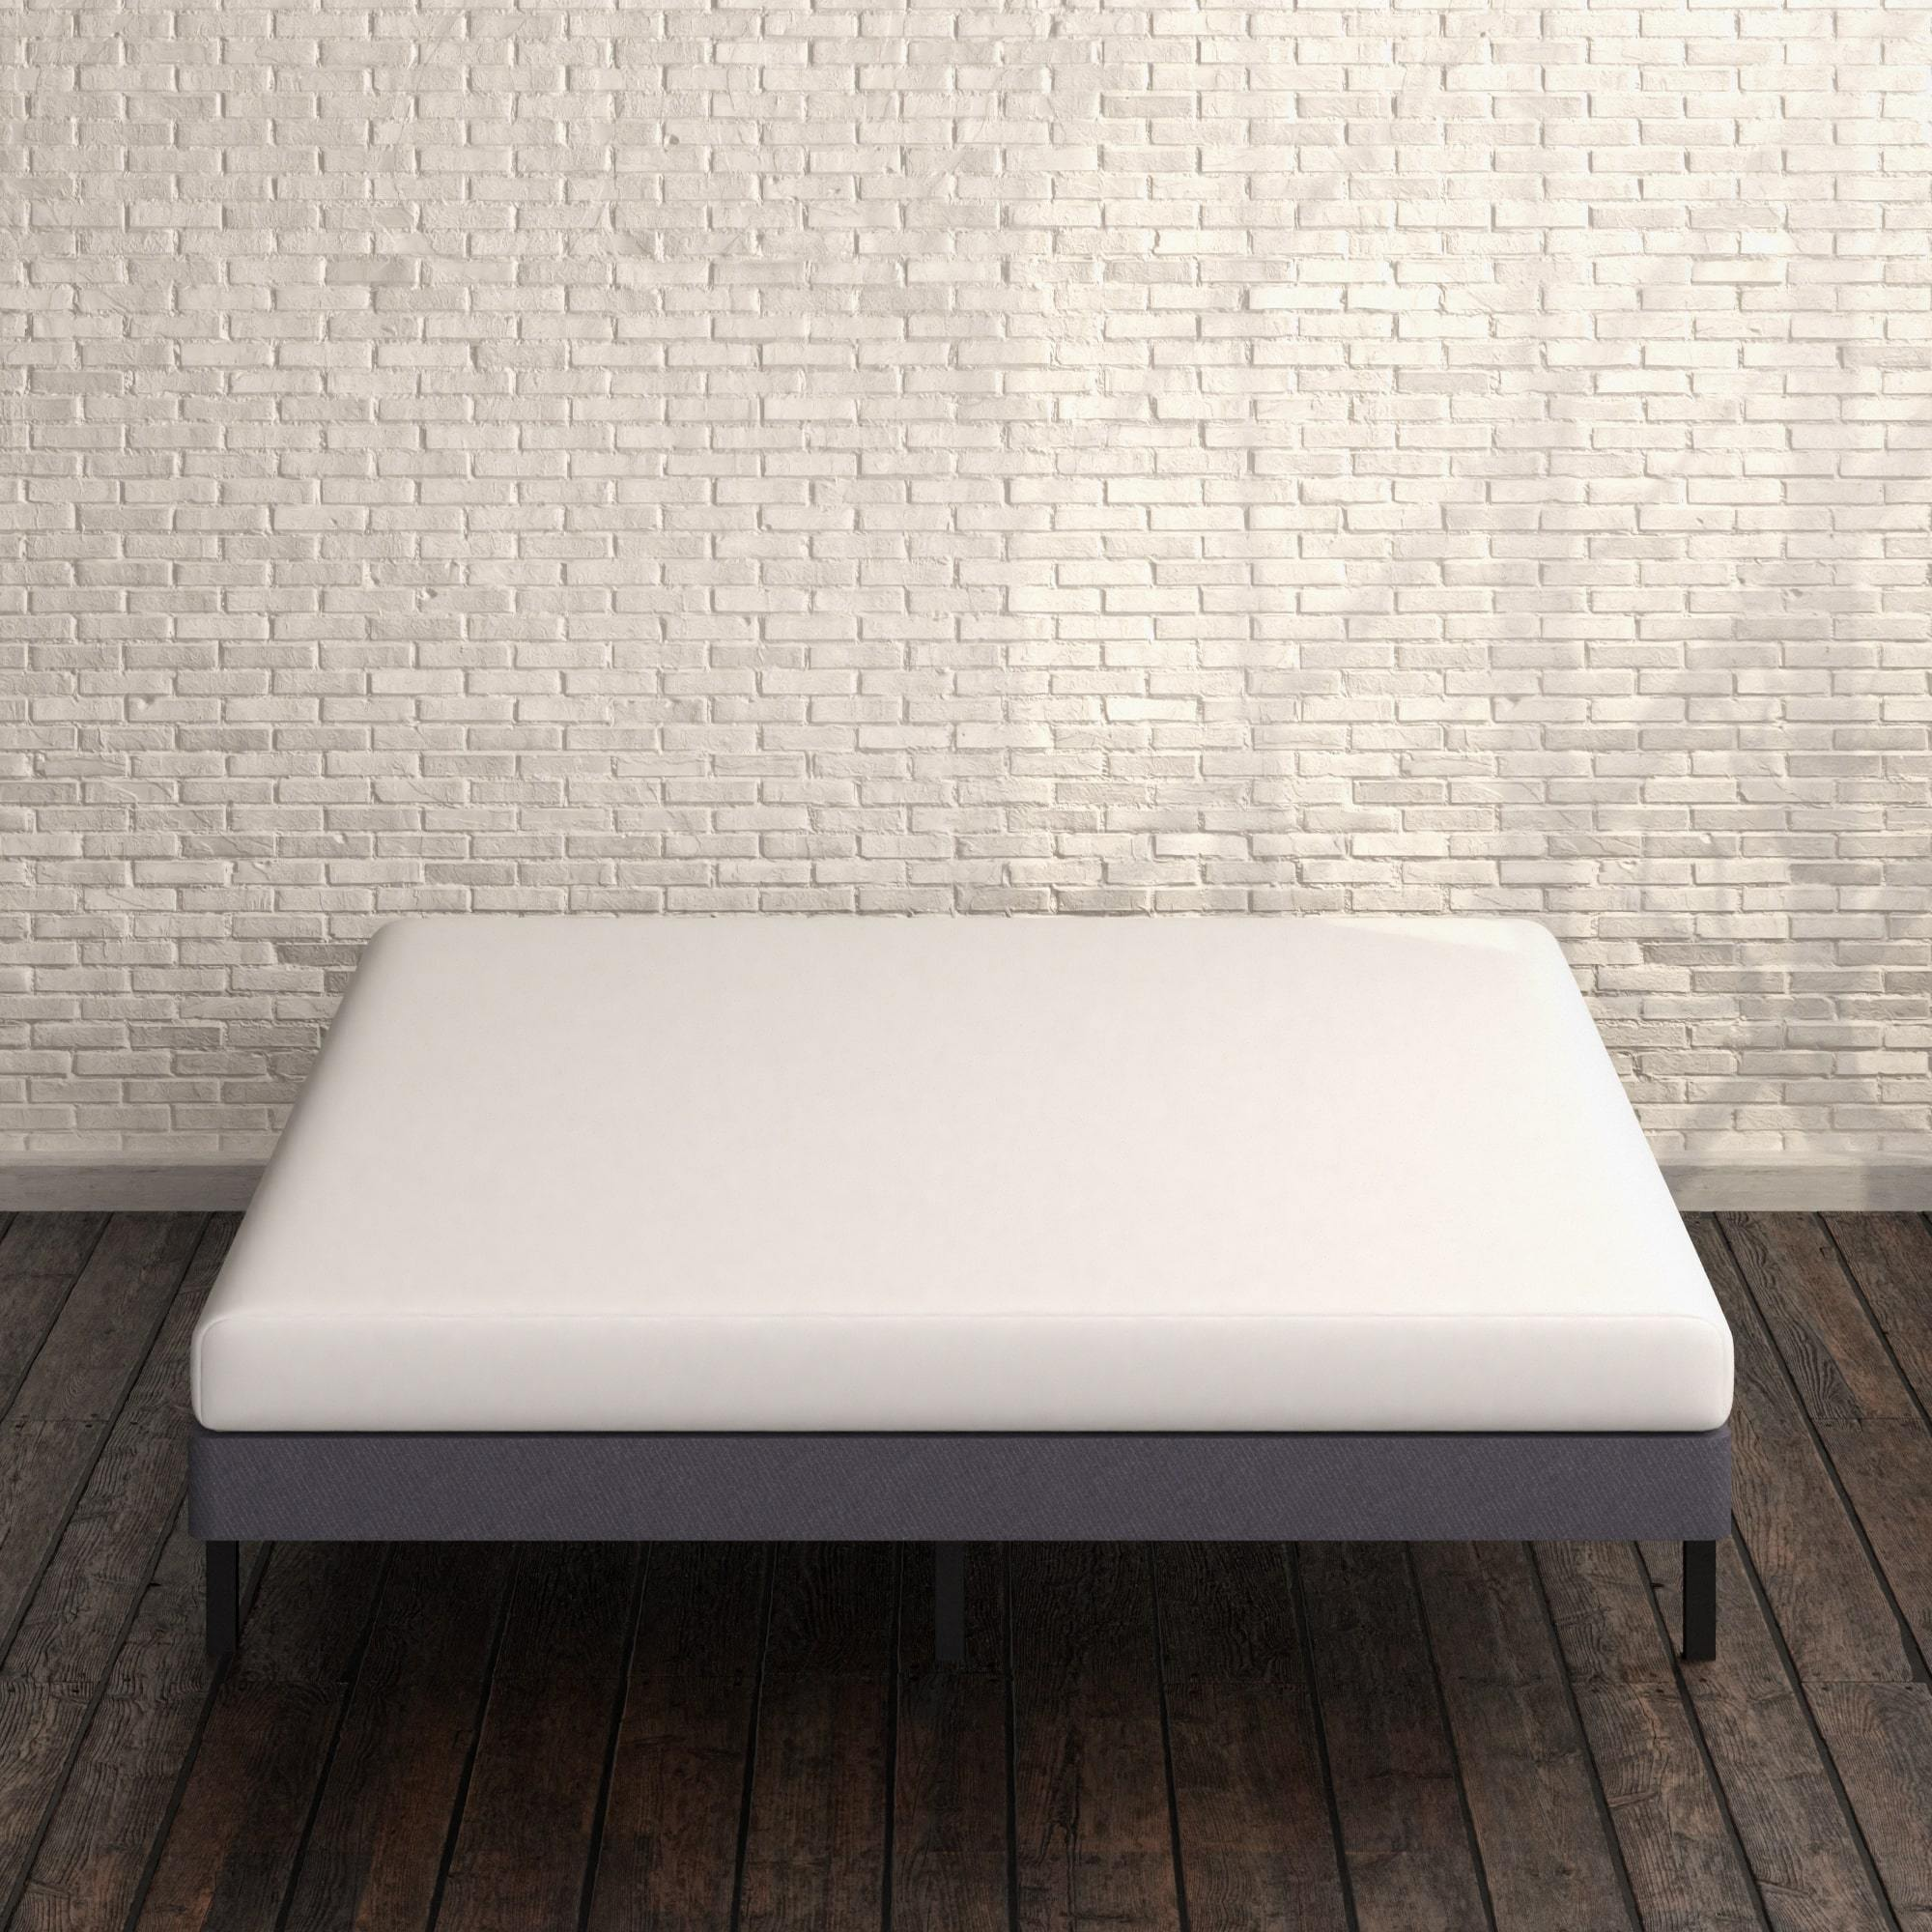 Upholstered Metal Box Spring with Wood Slats 4 inch